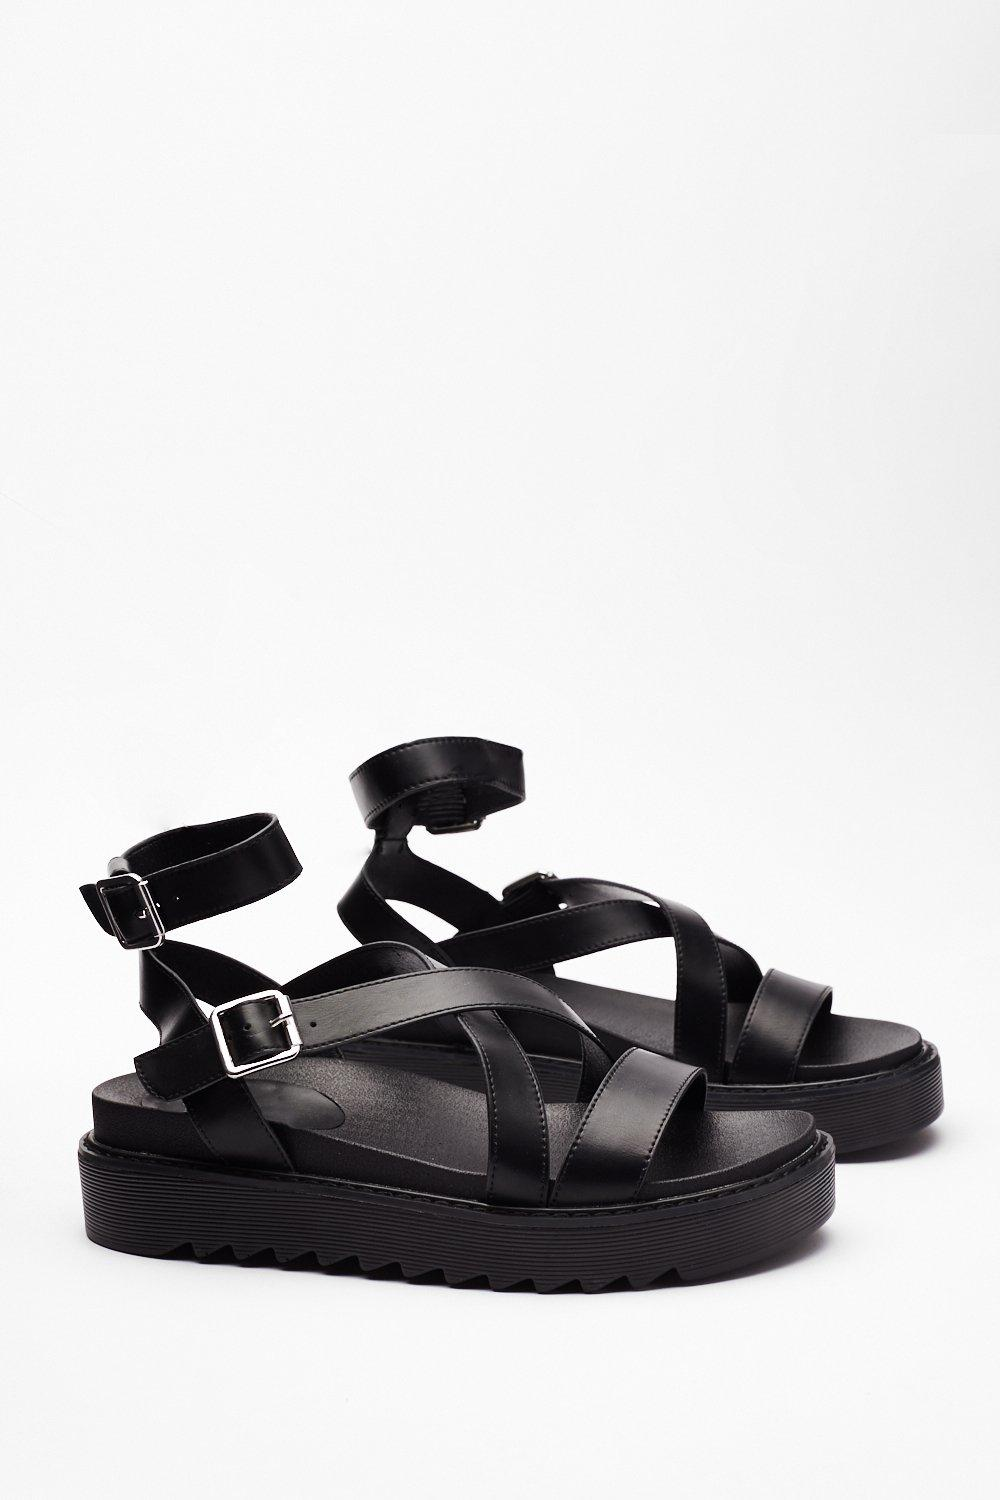 Easy USA Choice of Colors NEW Style #S9764 Details about  /Women/'s Shoes Faux Leather Sandals